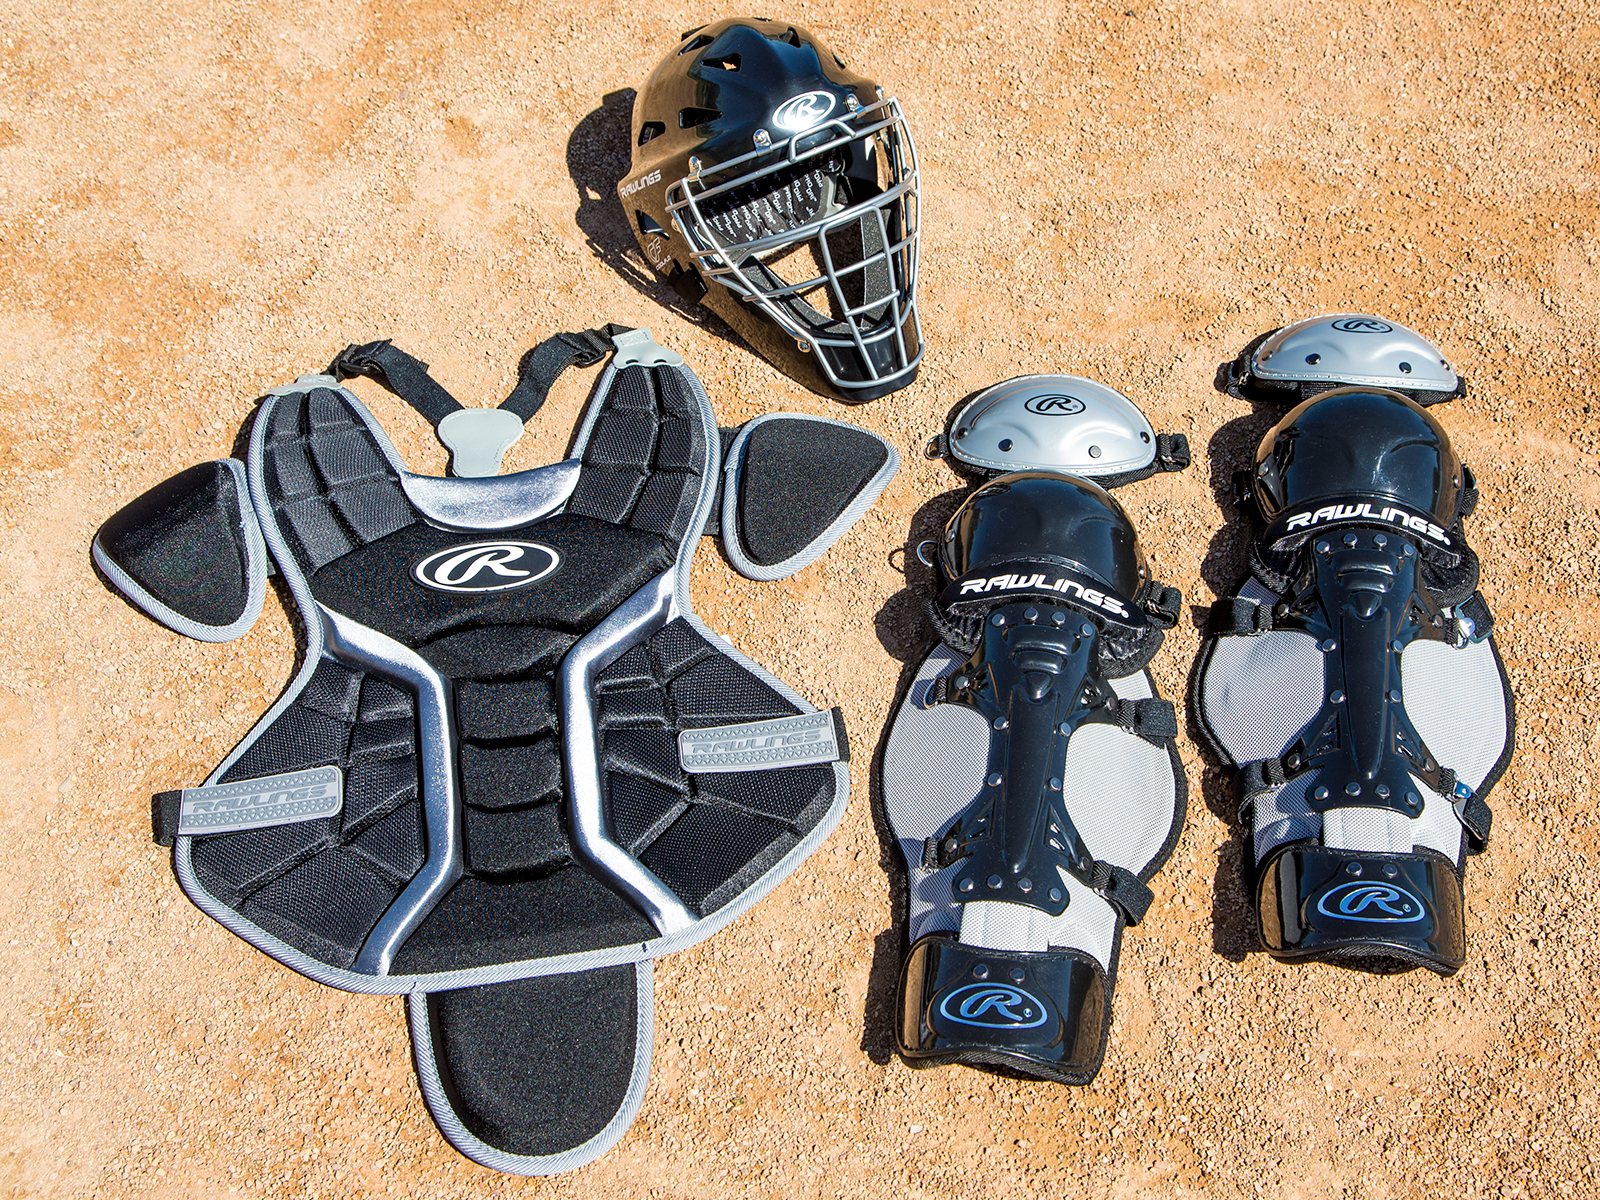 Complete catcher's gear set for school team